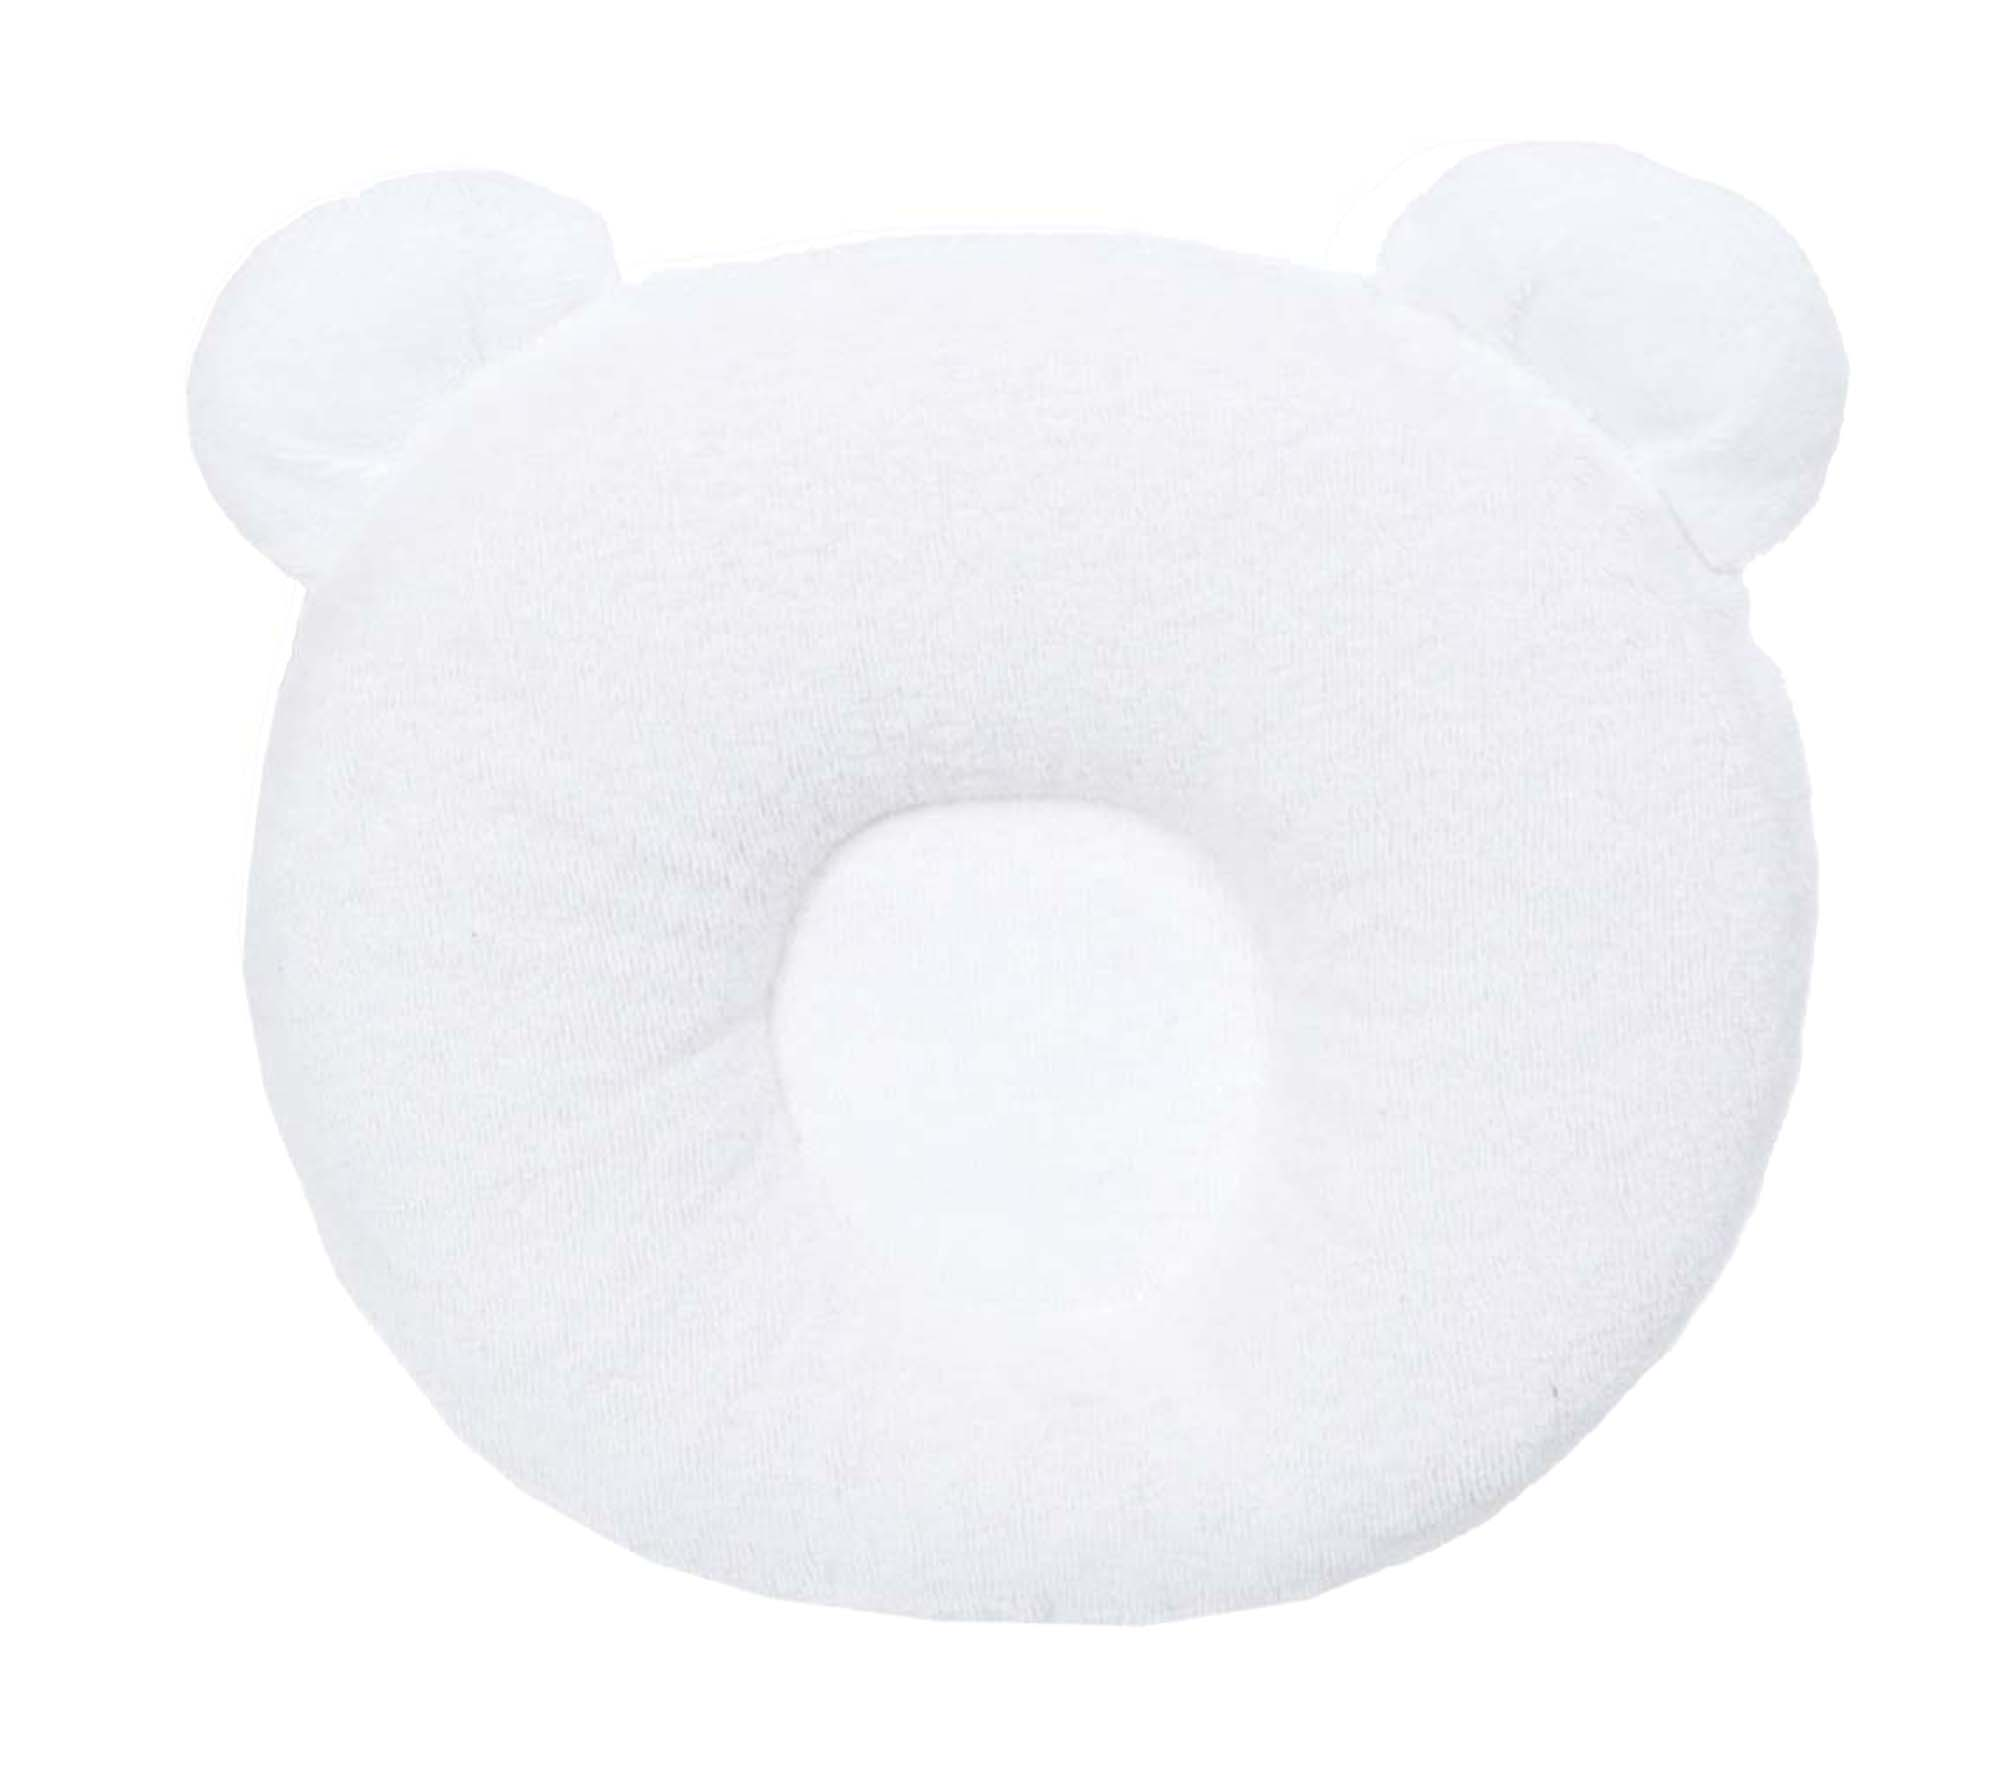 Panda Blanc P Tit Panda White Products And Accessories For Baby Brand Of